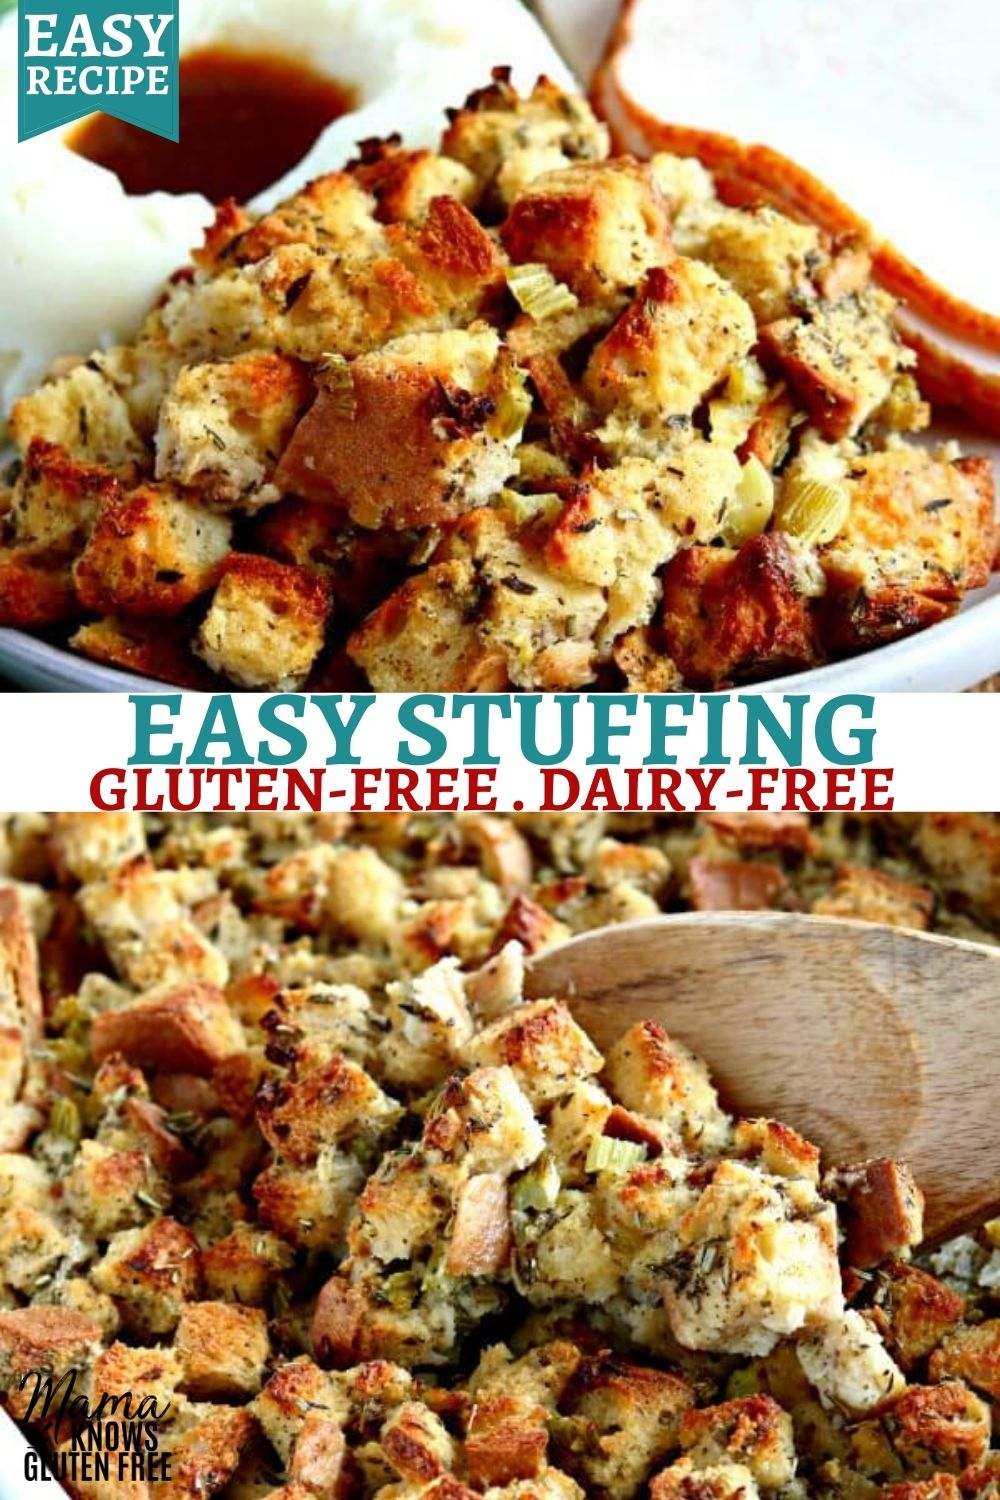 Gluten-Free Stuffing -   18 stuffing recipes easy thanksgiving ideas